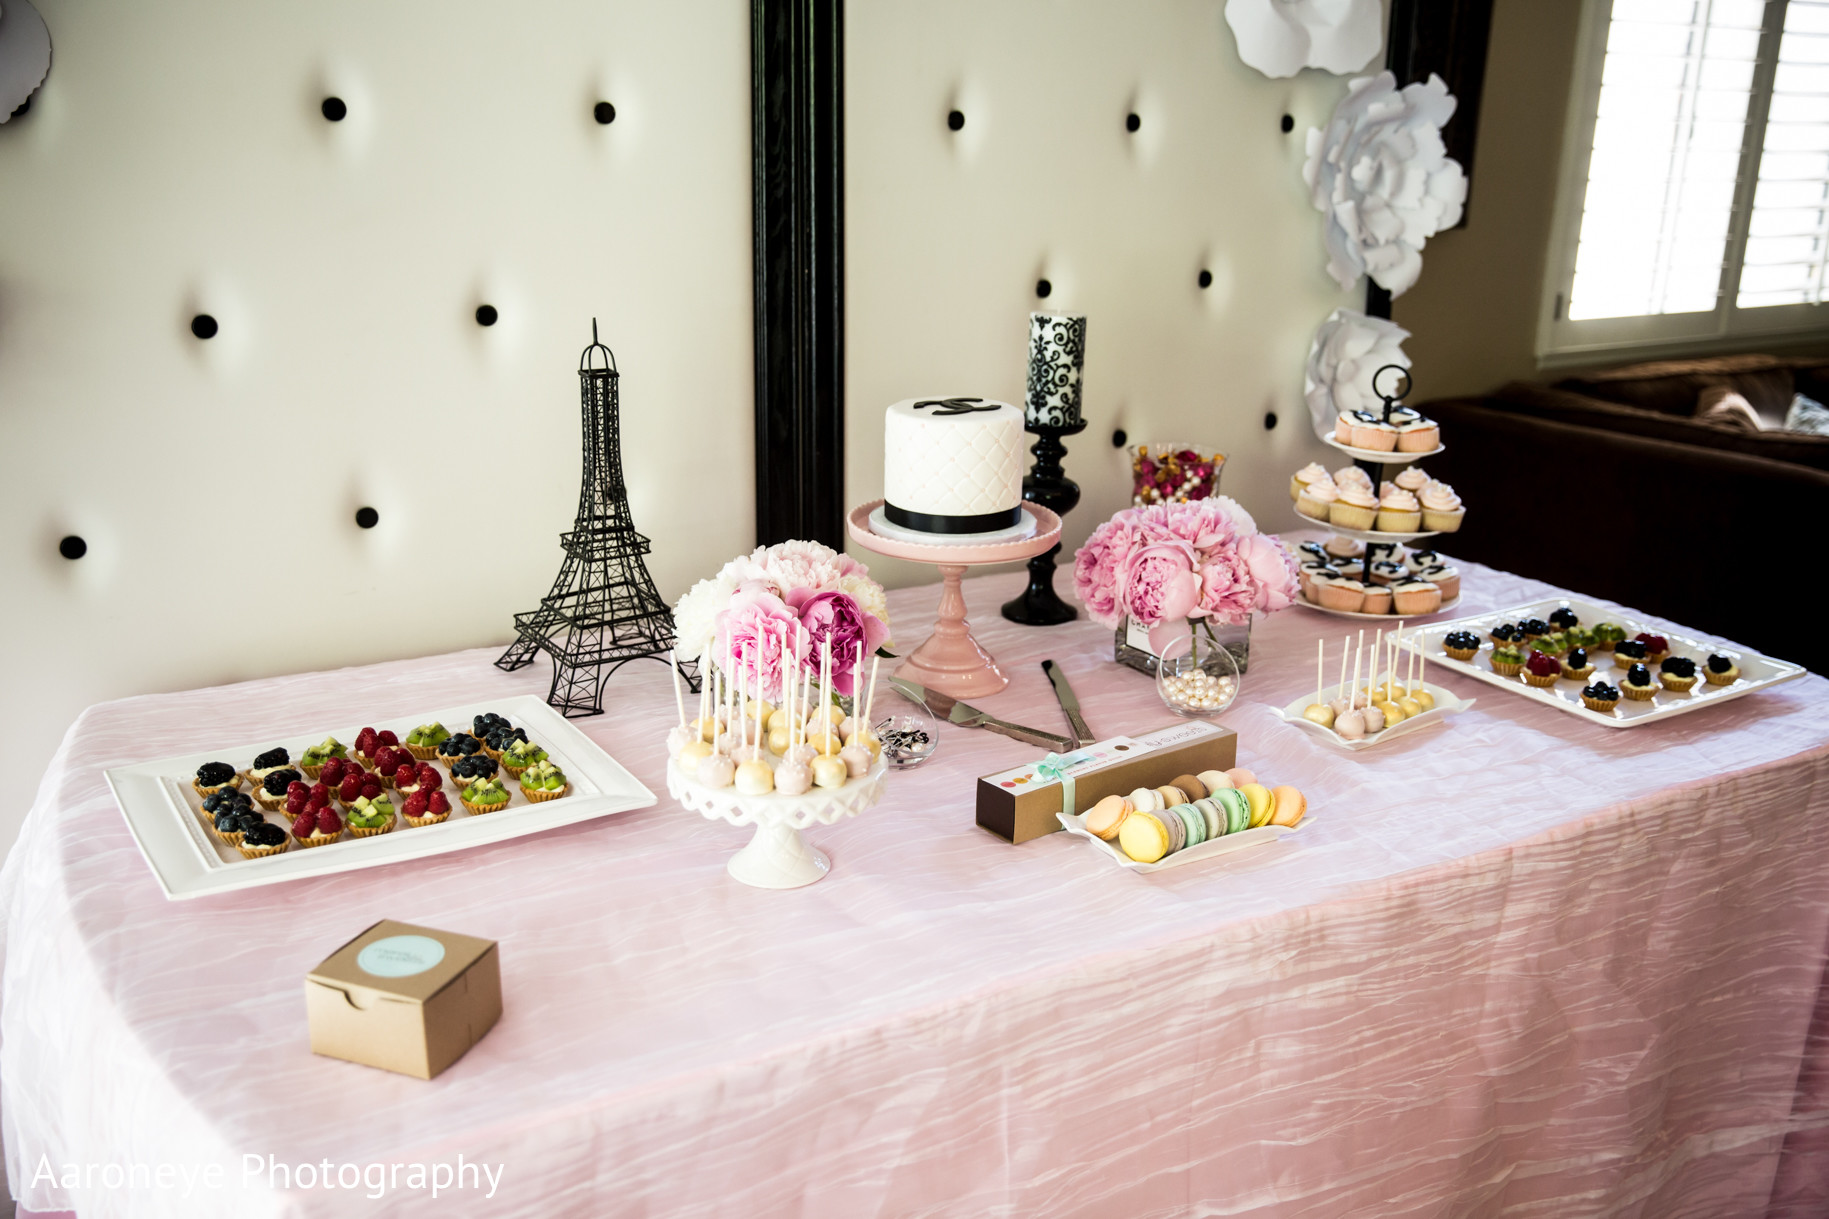 Chanel Themed Bridal Shower By Aaroneye Photography